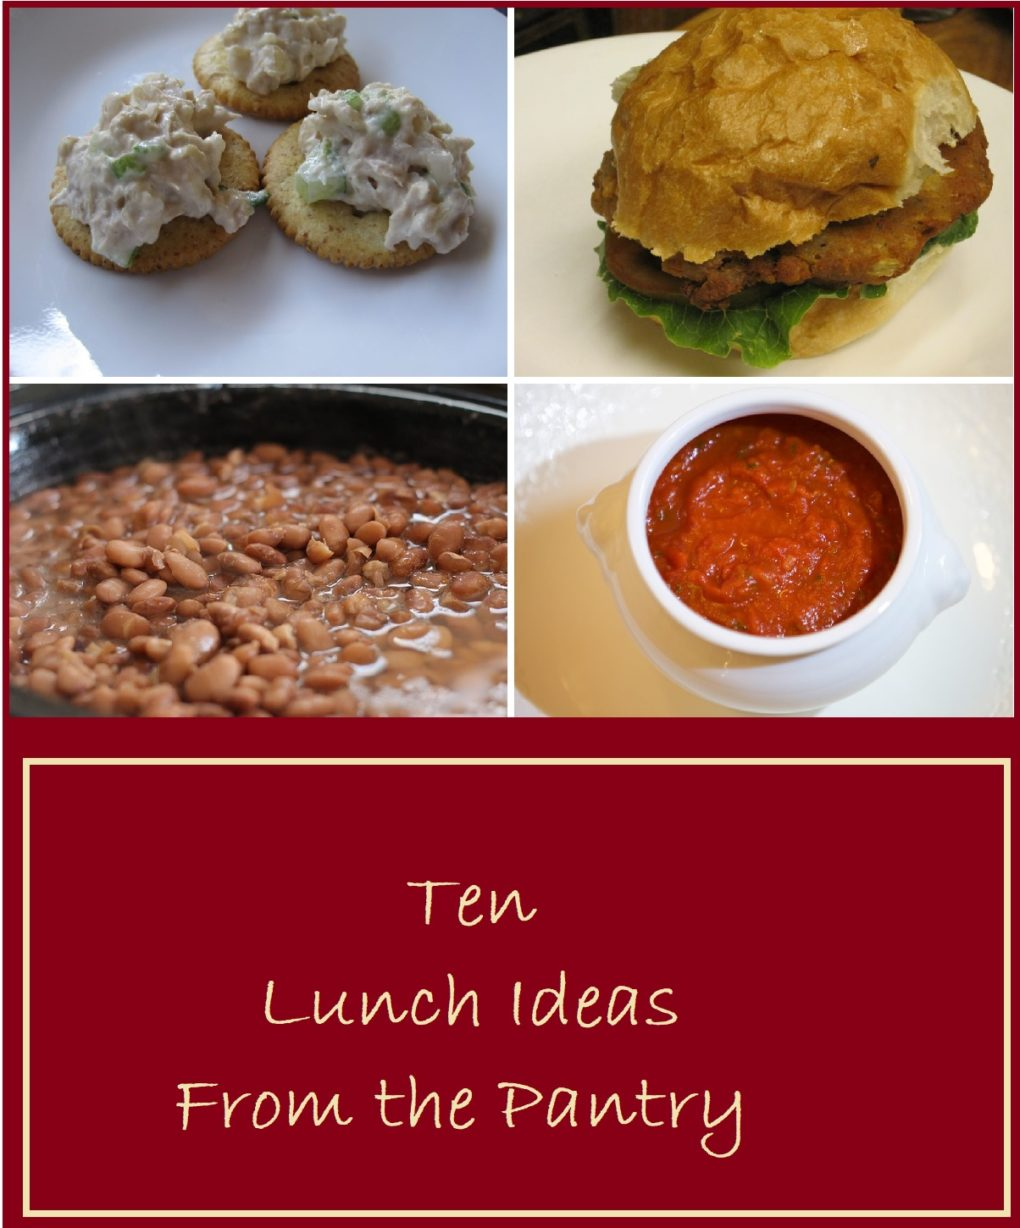 Ten Lunch Ideas from the Pantry